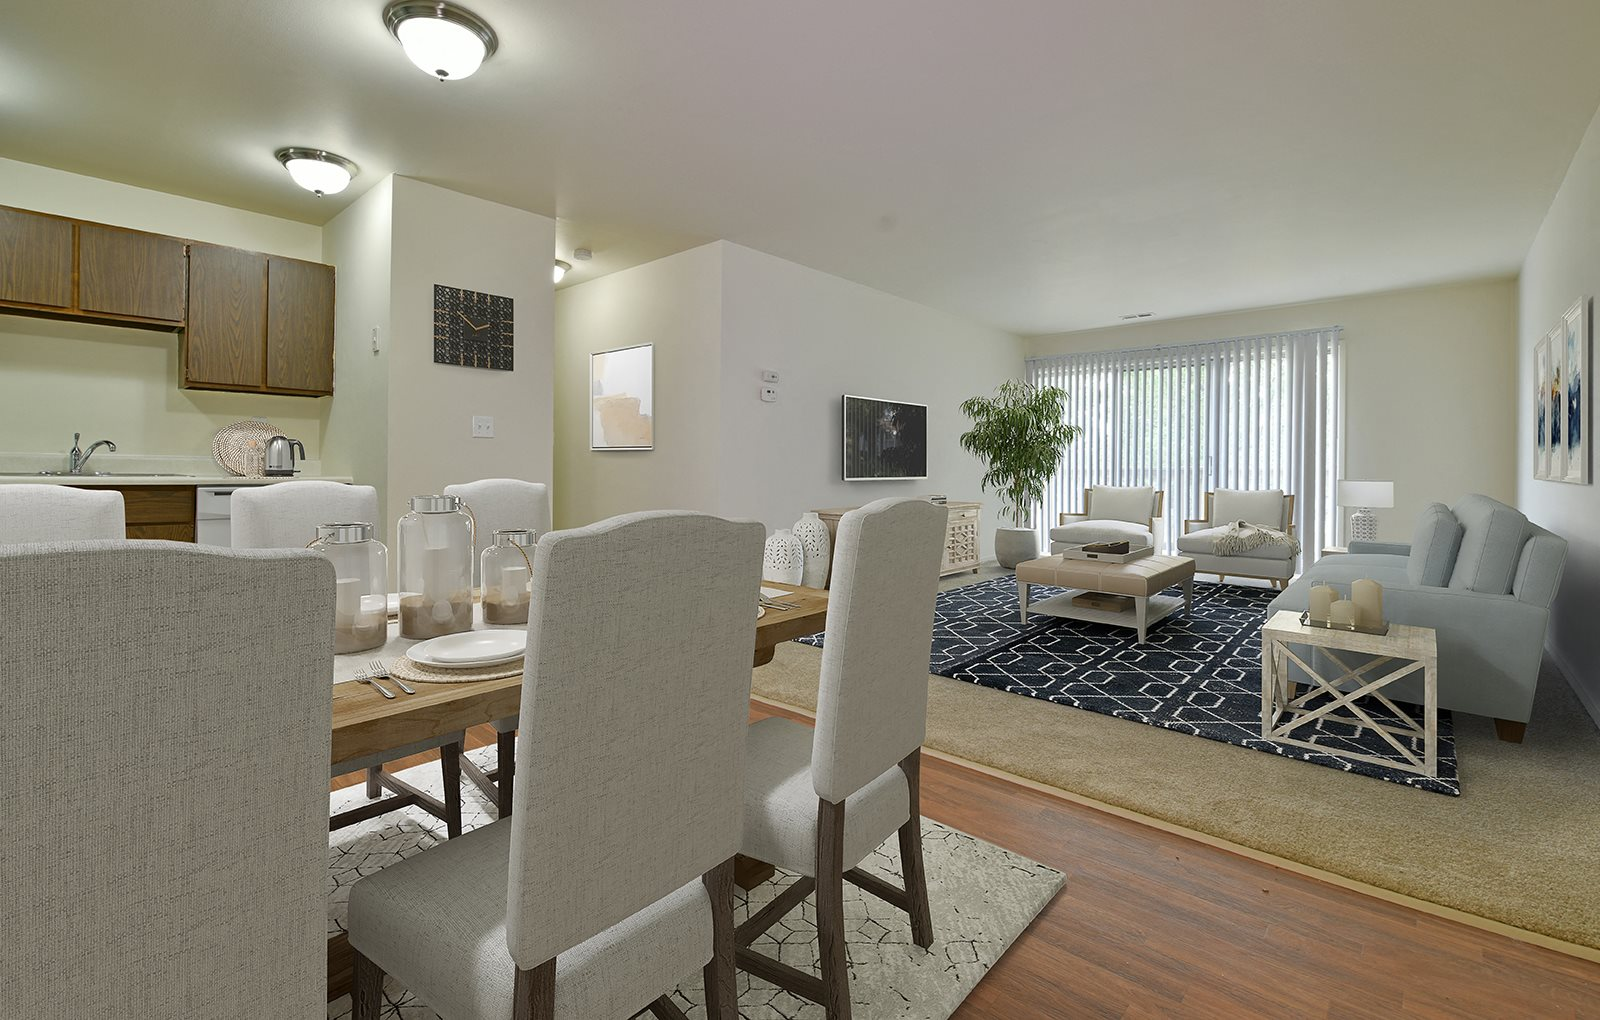 Living Room With Dining Area at Grand Bend Club Apartments, Grand Blanc, Michigan